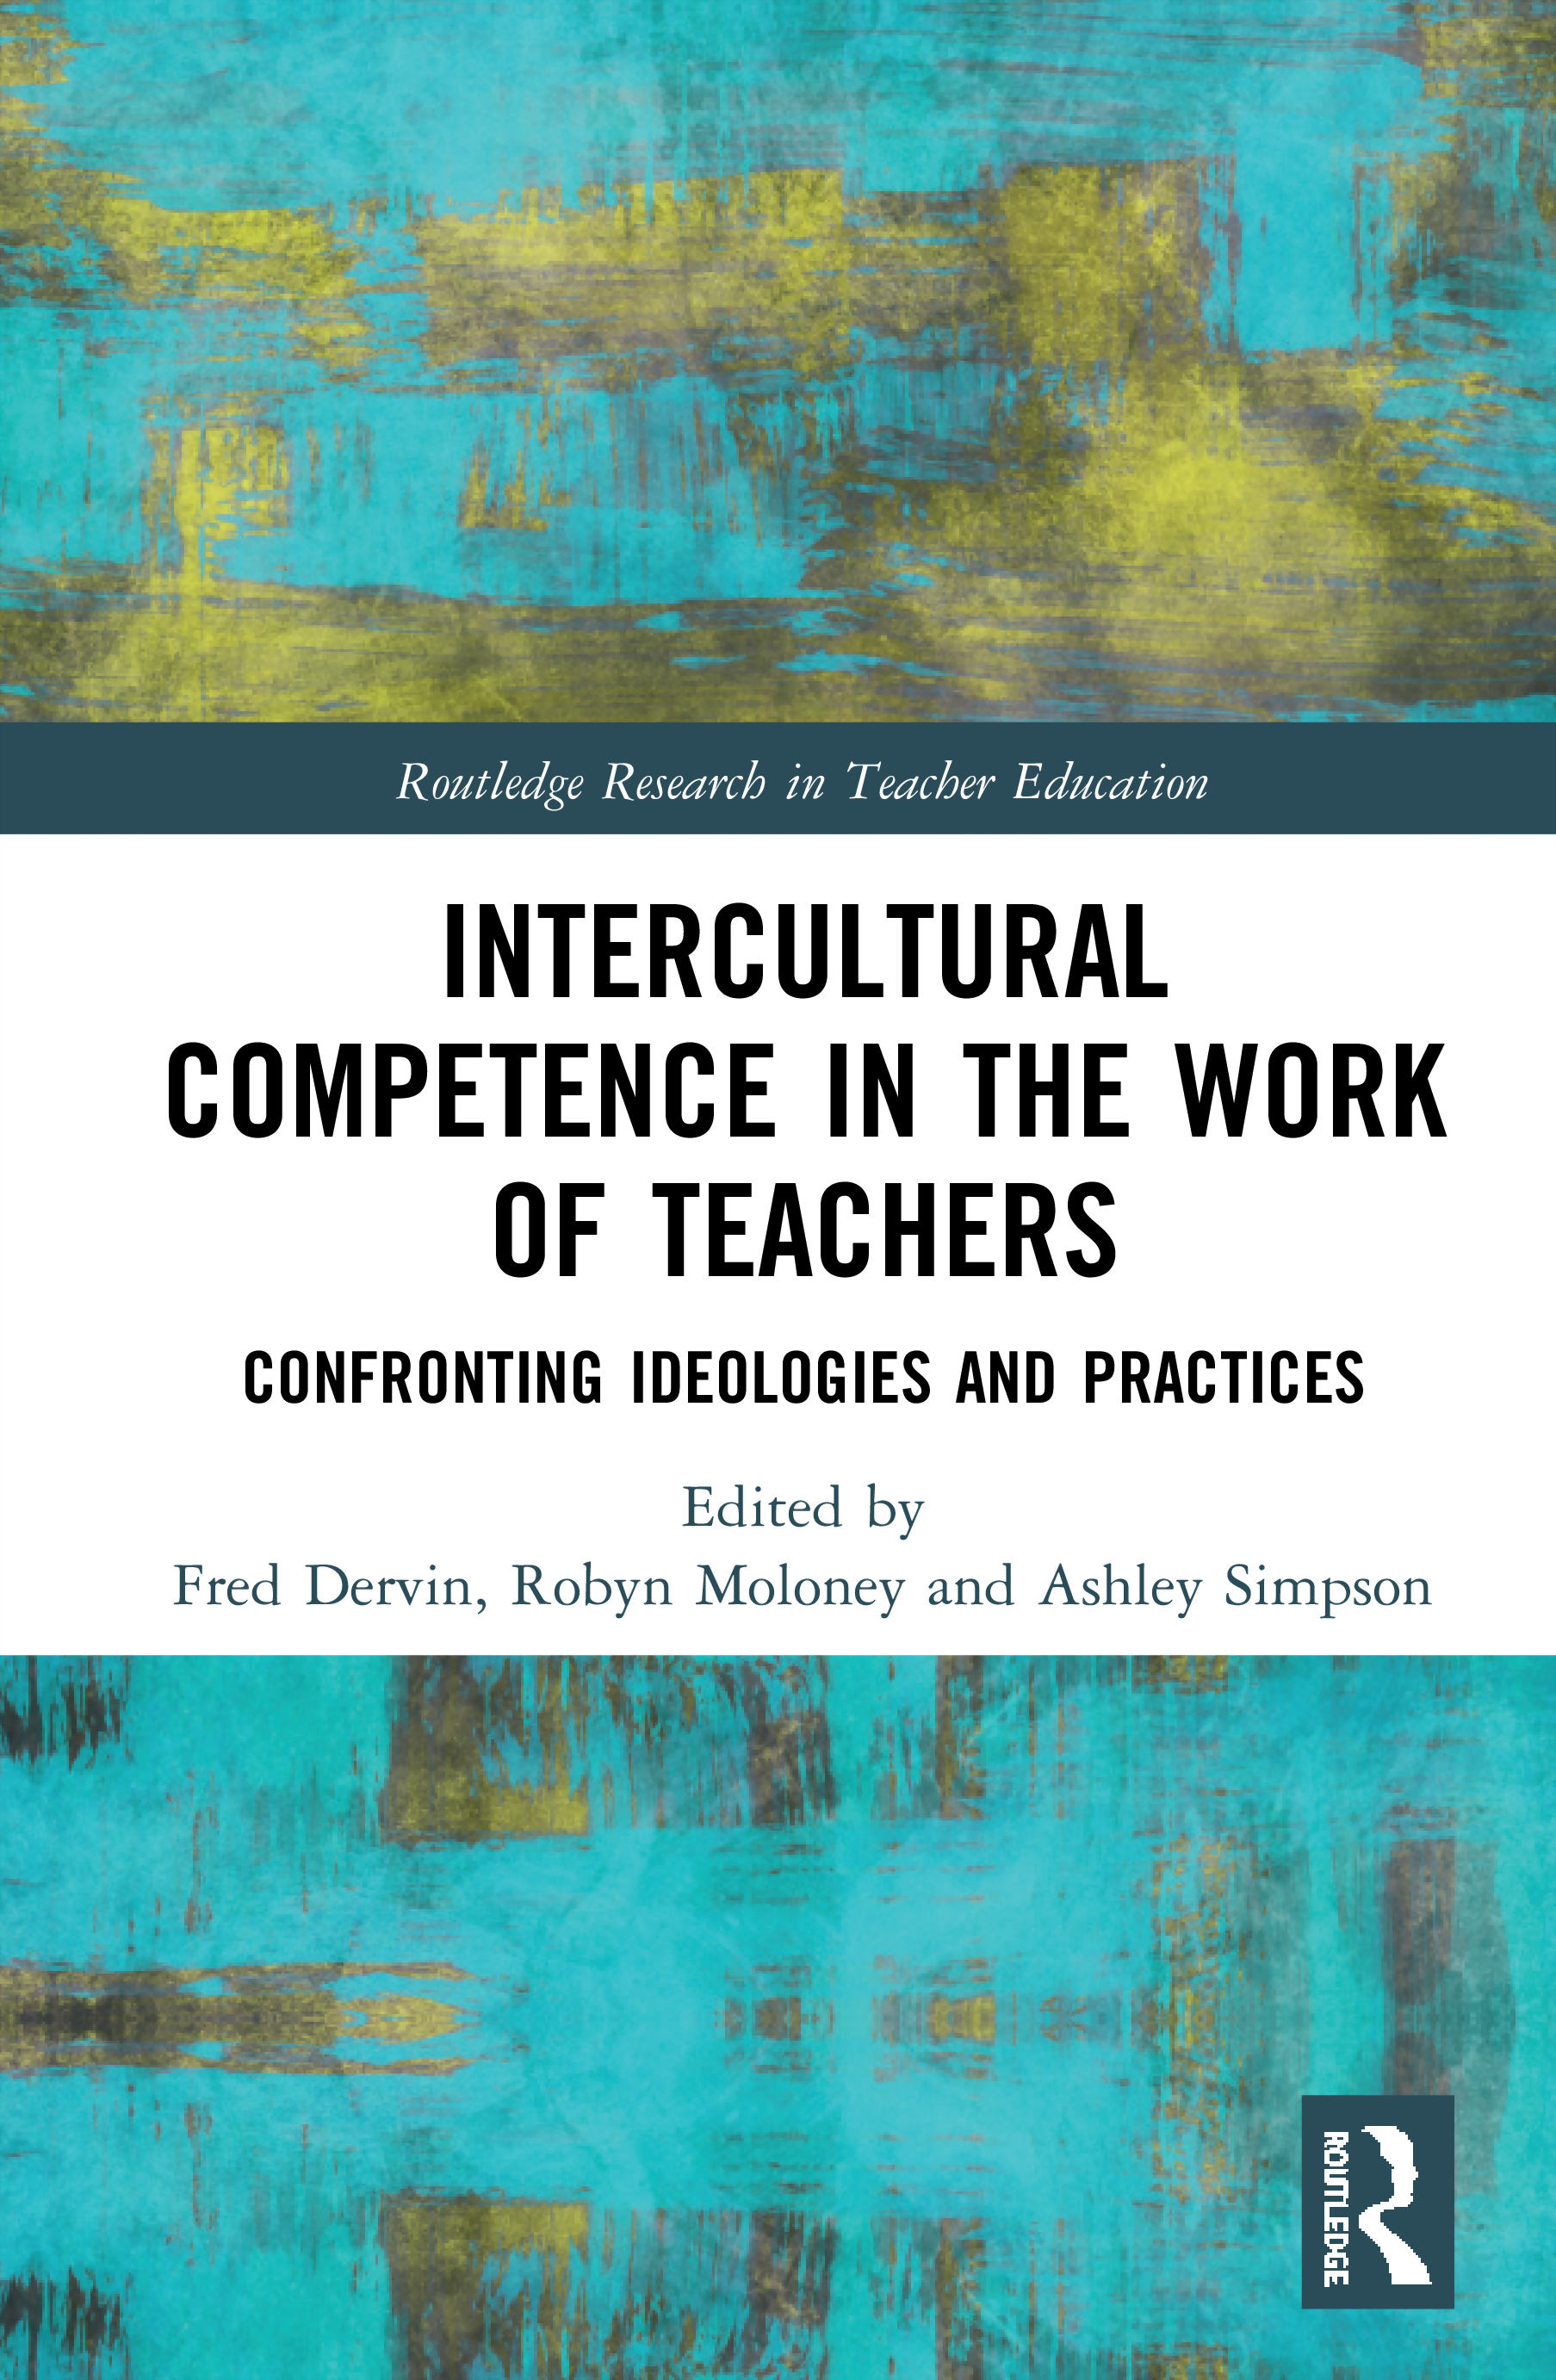 Intercultural Competence in the Work of Teachers: Confronting Ideologies and Practices book cover